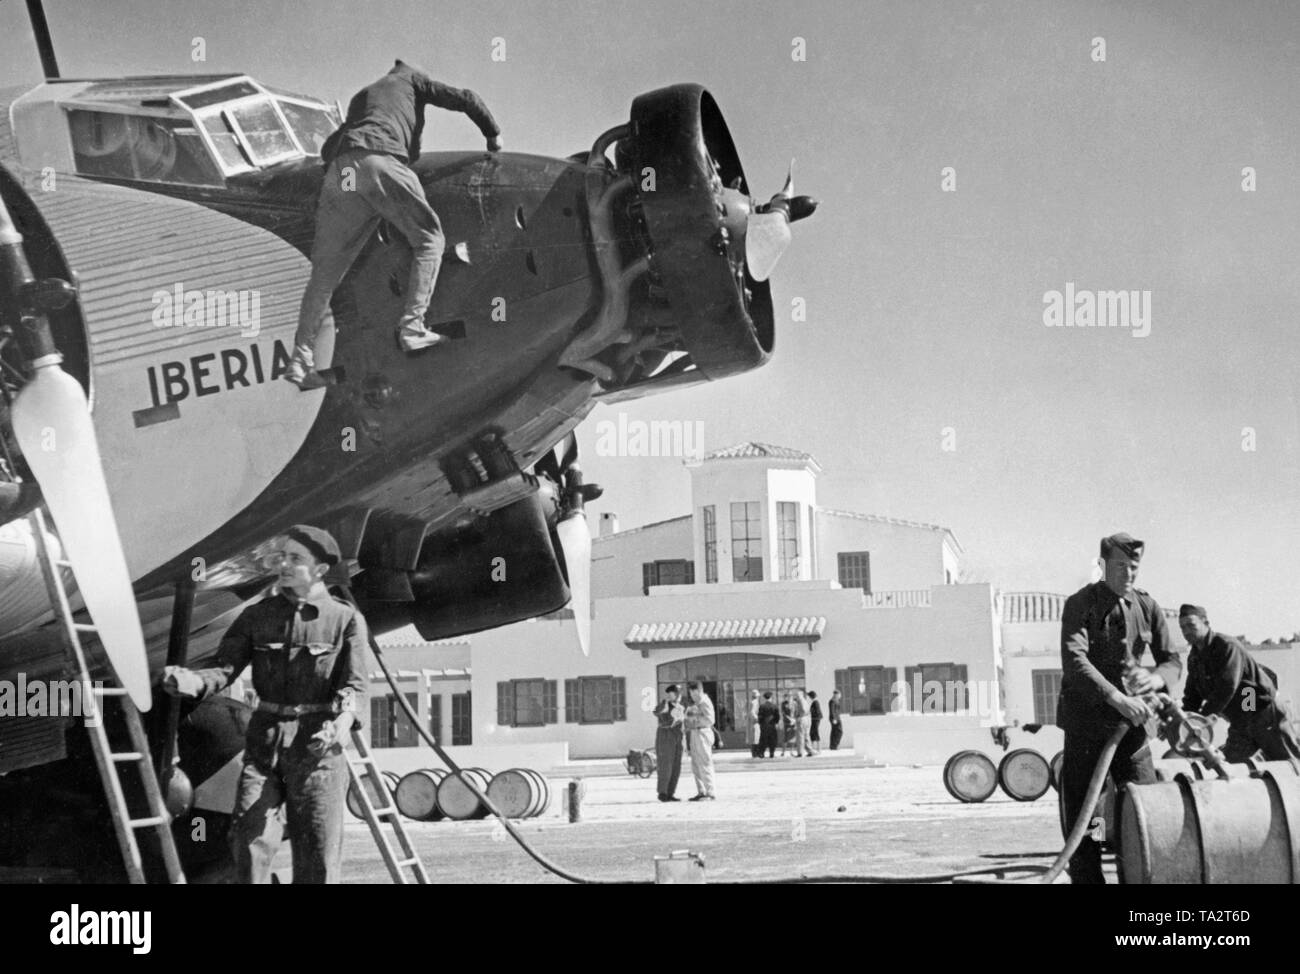 Photo of the cockpits and engines of a German Junkers Ju 52 of the Spanish airline Iberia 1939 at the airport of Salamanca, Castile and Leon, Spain. Mechanics are working on one of the engines. The machine is named 'Mola', after general Emilio Mola Vidal (died 1937), one of the leaders of the uprising of General Francisco Franco. During the Civil War, the Deutsche Lufthansa and the Iberia (founded in 1927) carried out scheduled flights mostly with German pilots in the Spanish national zone from 1937. The aircraft were provided by the Deutsche Lufthansa AG. - Stock Image